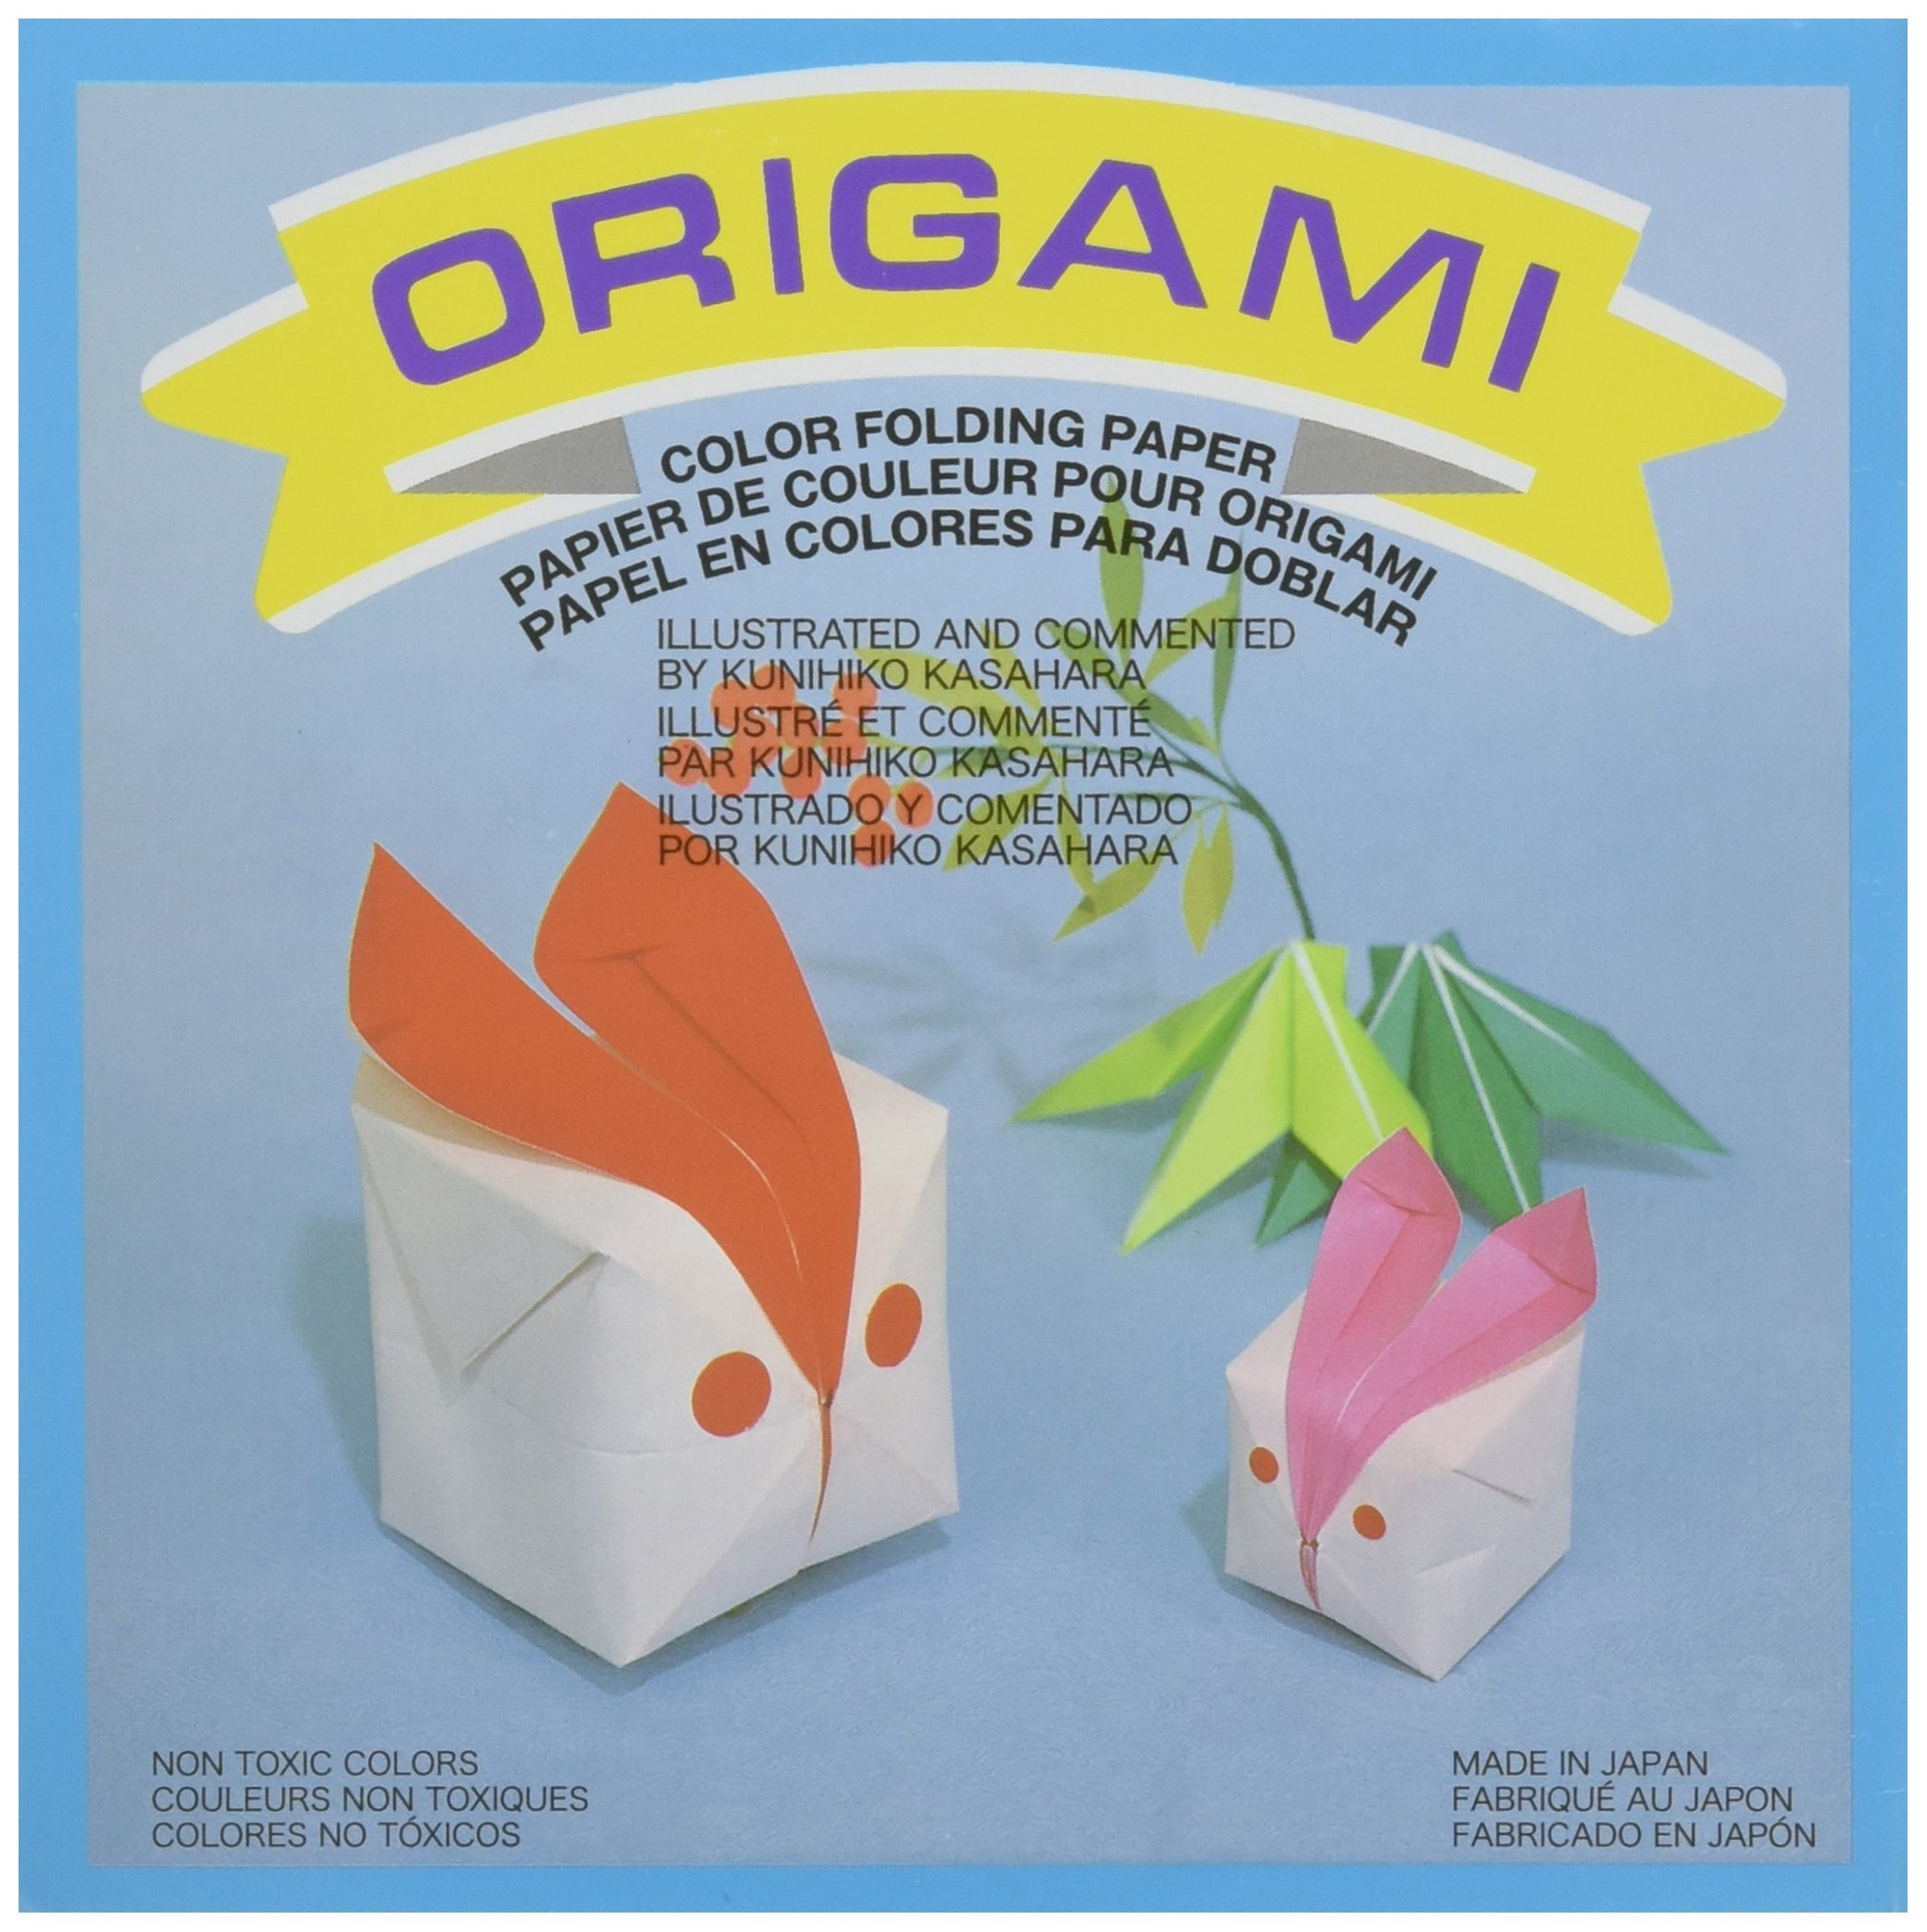 Aitoh OG-4-500 Origami Paper, 5.875-Inch by 5.875-Inch, 500-Pack by Aitoh